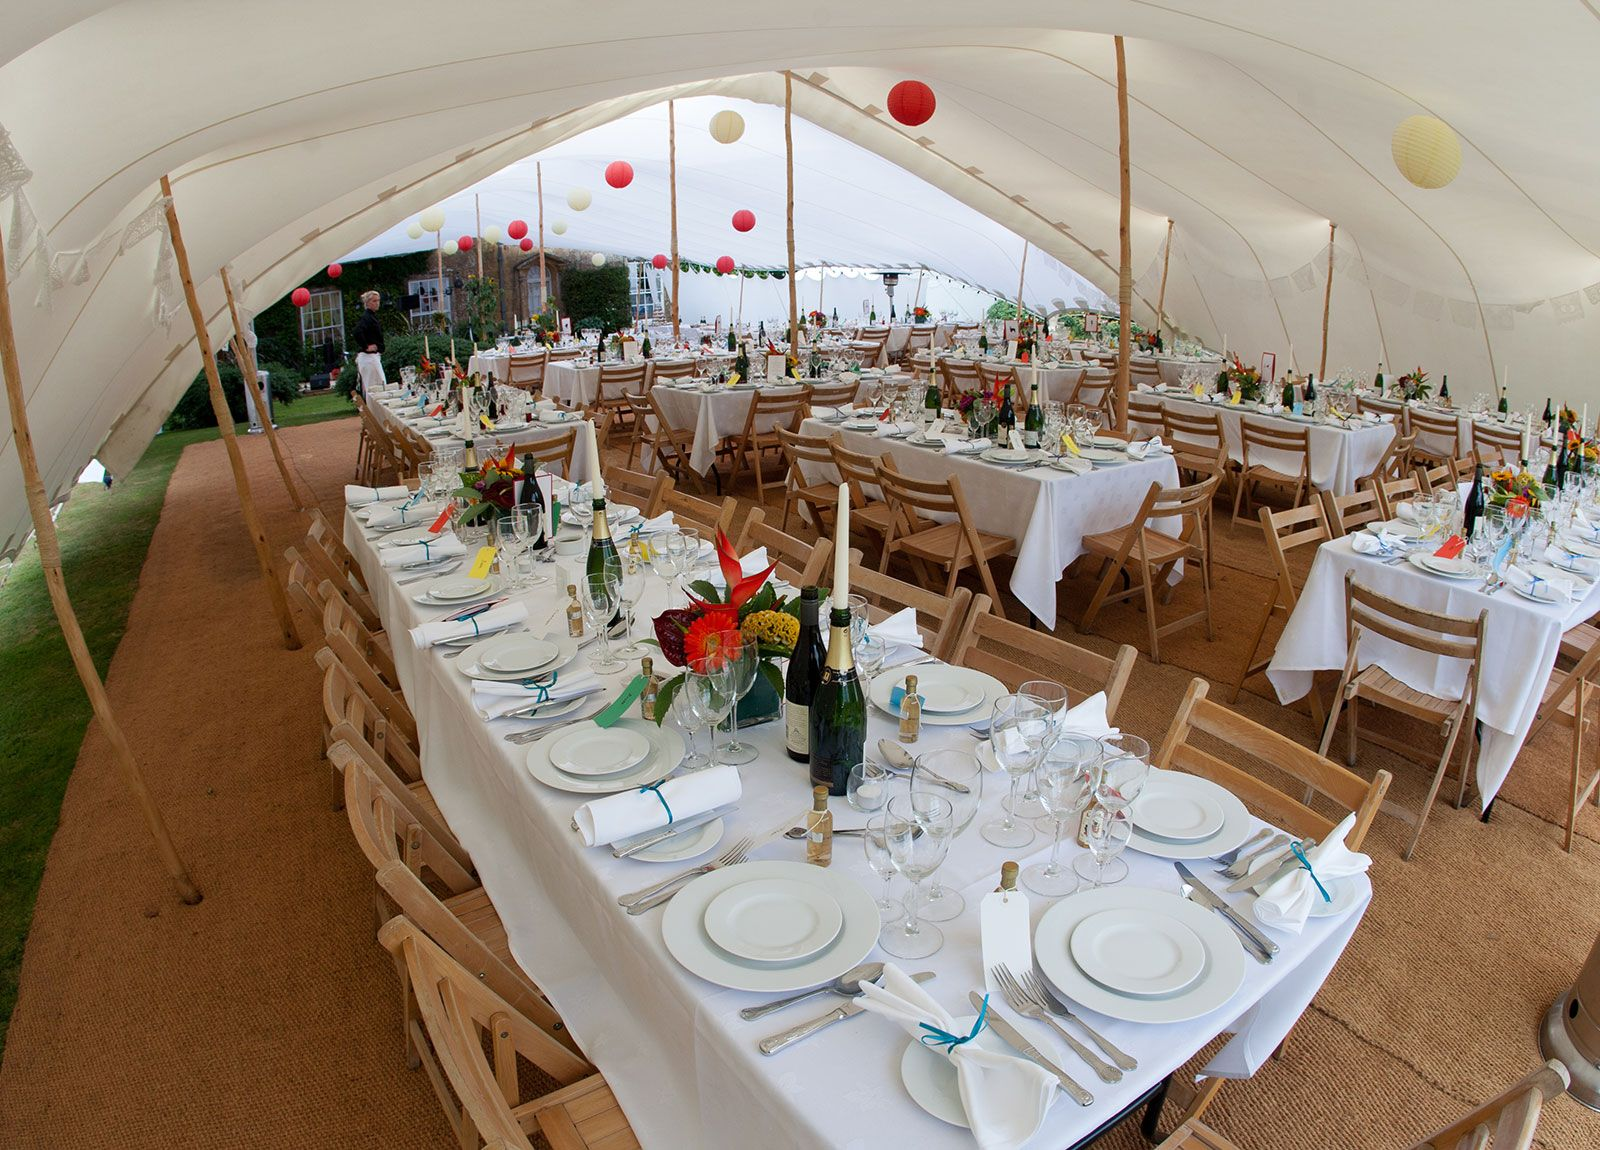 Corporate Events Photo Gallery - Stretch and Tents & Corporate Events Photo Gallery - Stretch and Tents | Tent interior ...